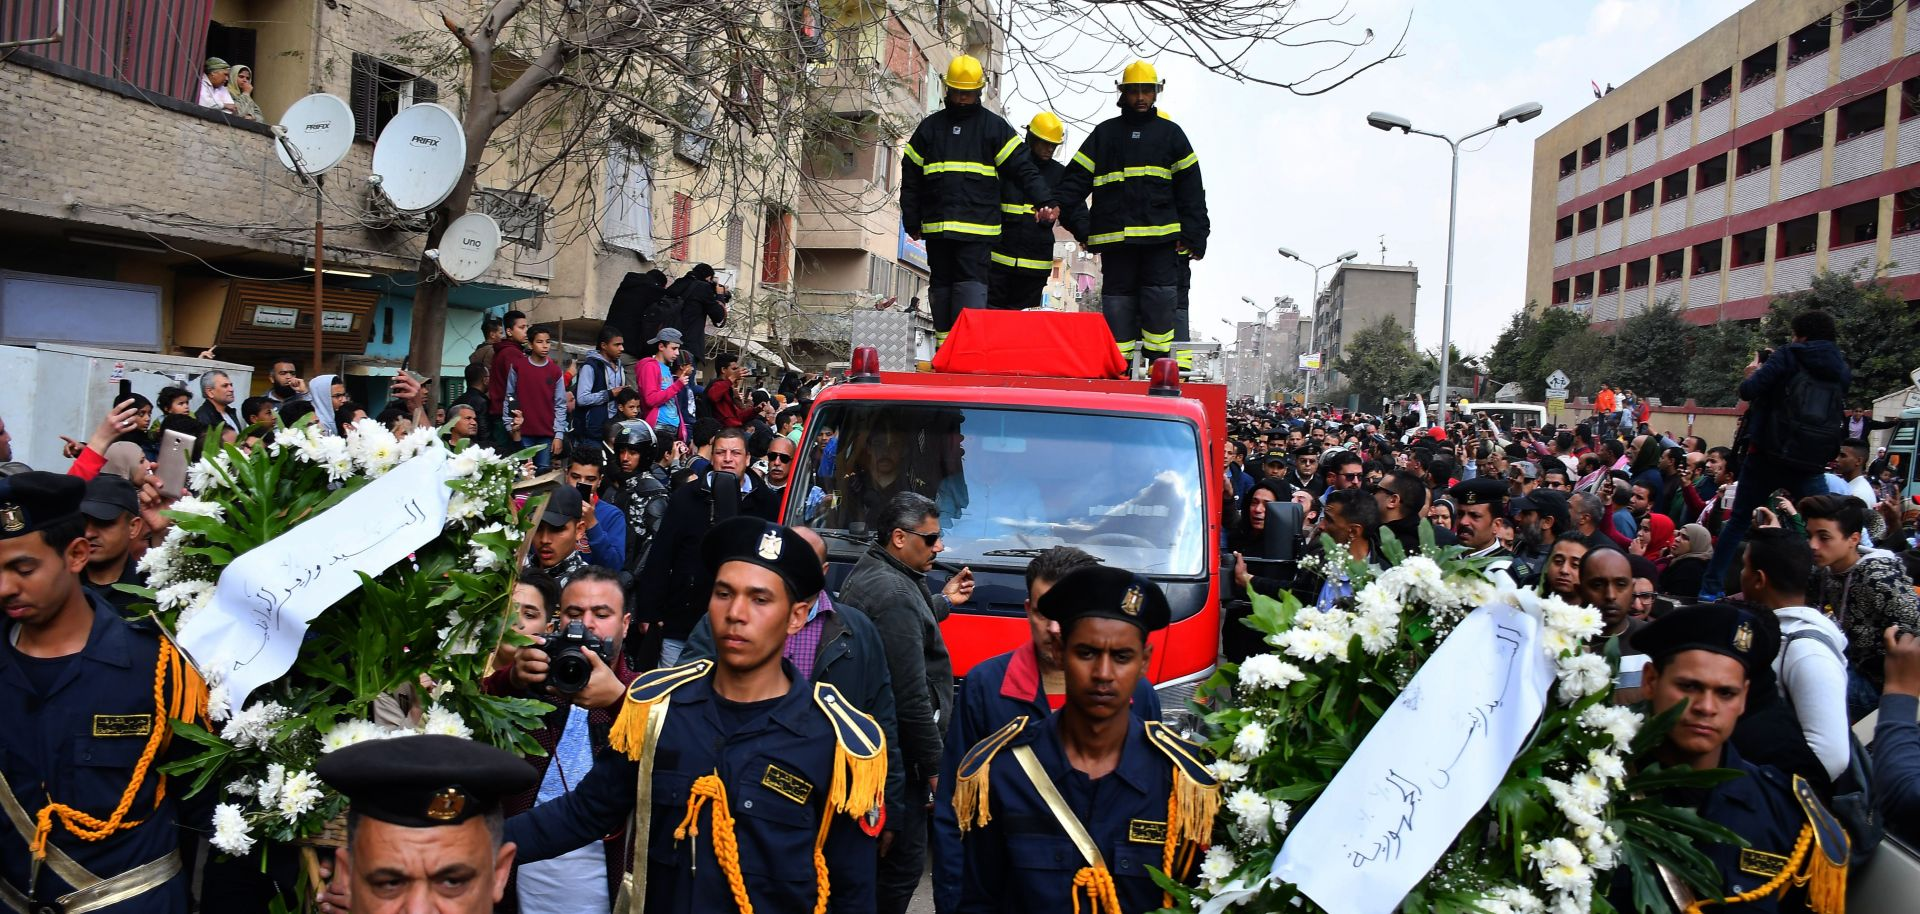 Policemen carry wreaths in Cairo on Feb. 19, 2019, at the funeral of Mahmud Abu el-Yzied, one of three policemen killed in a bombing the previous day.